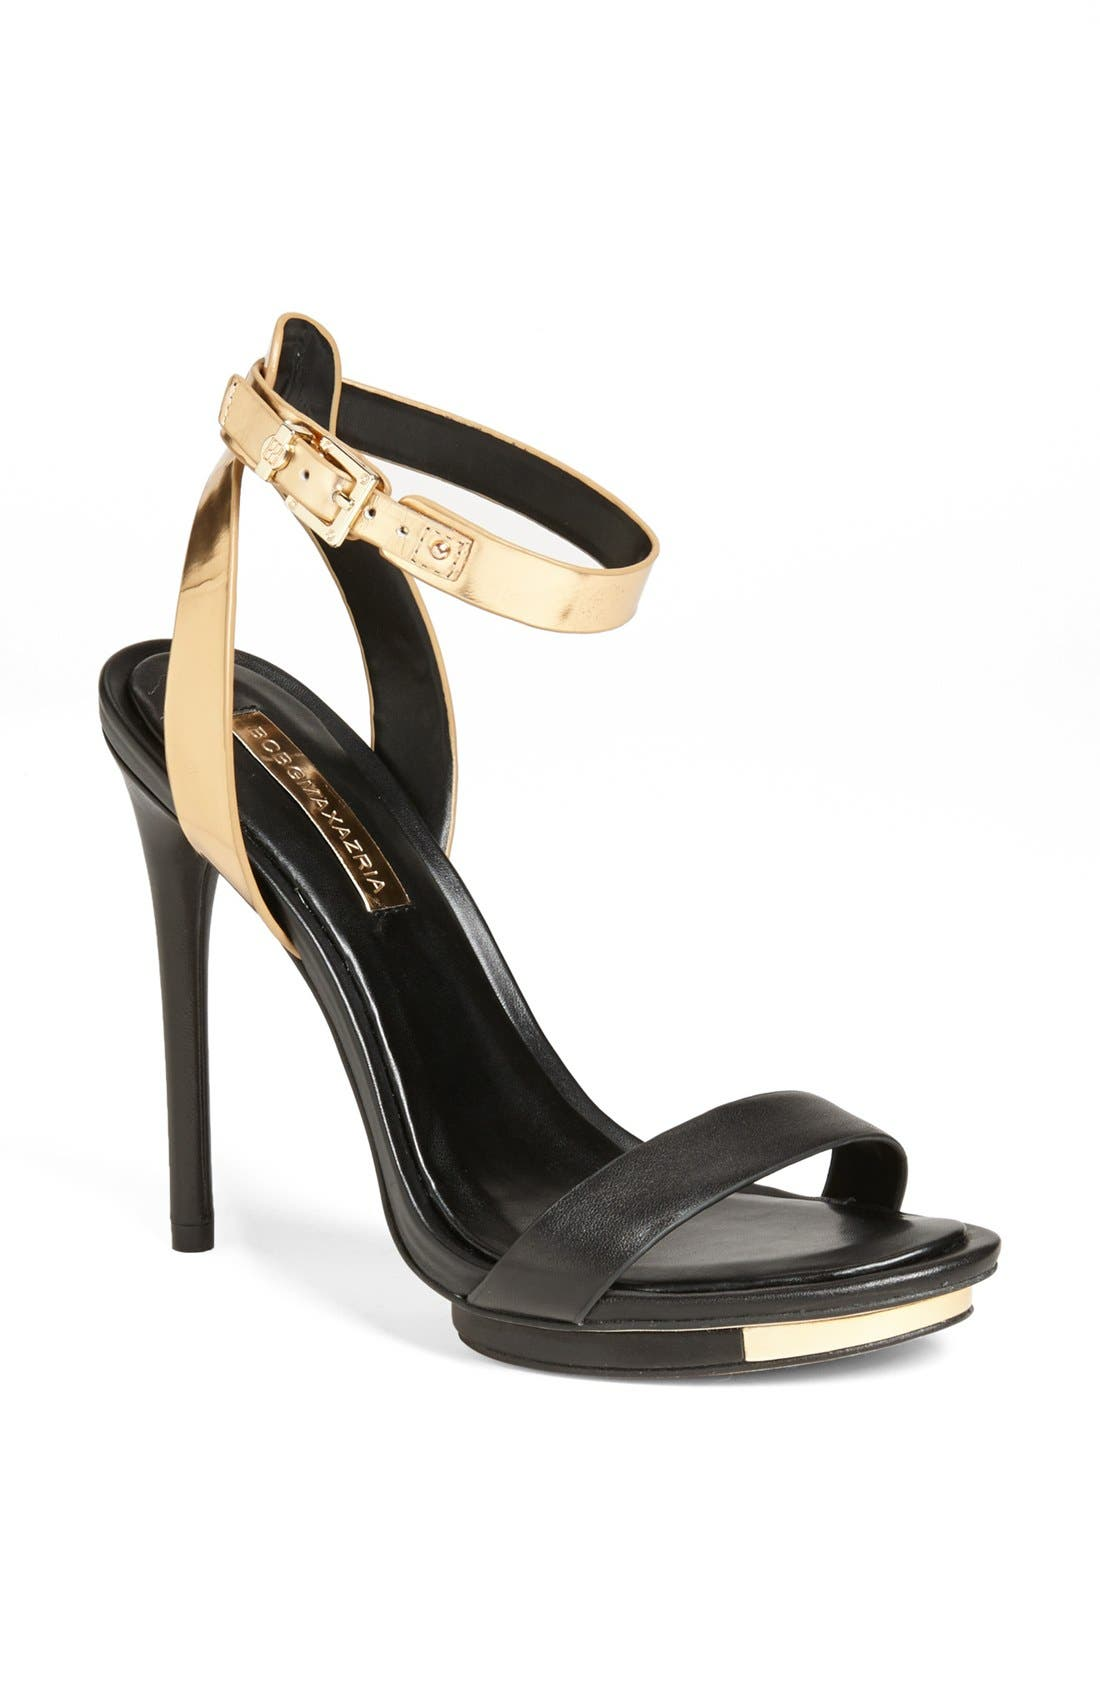 Alternate Image 1 Selected - BCBGMAXAZRIA 'Finite' Sandal